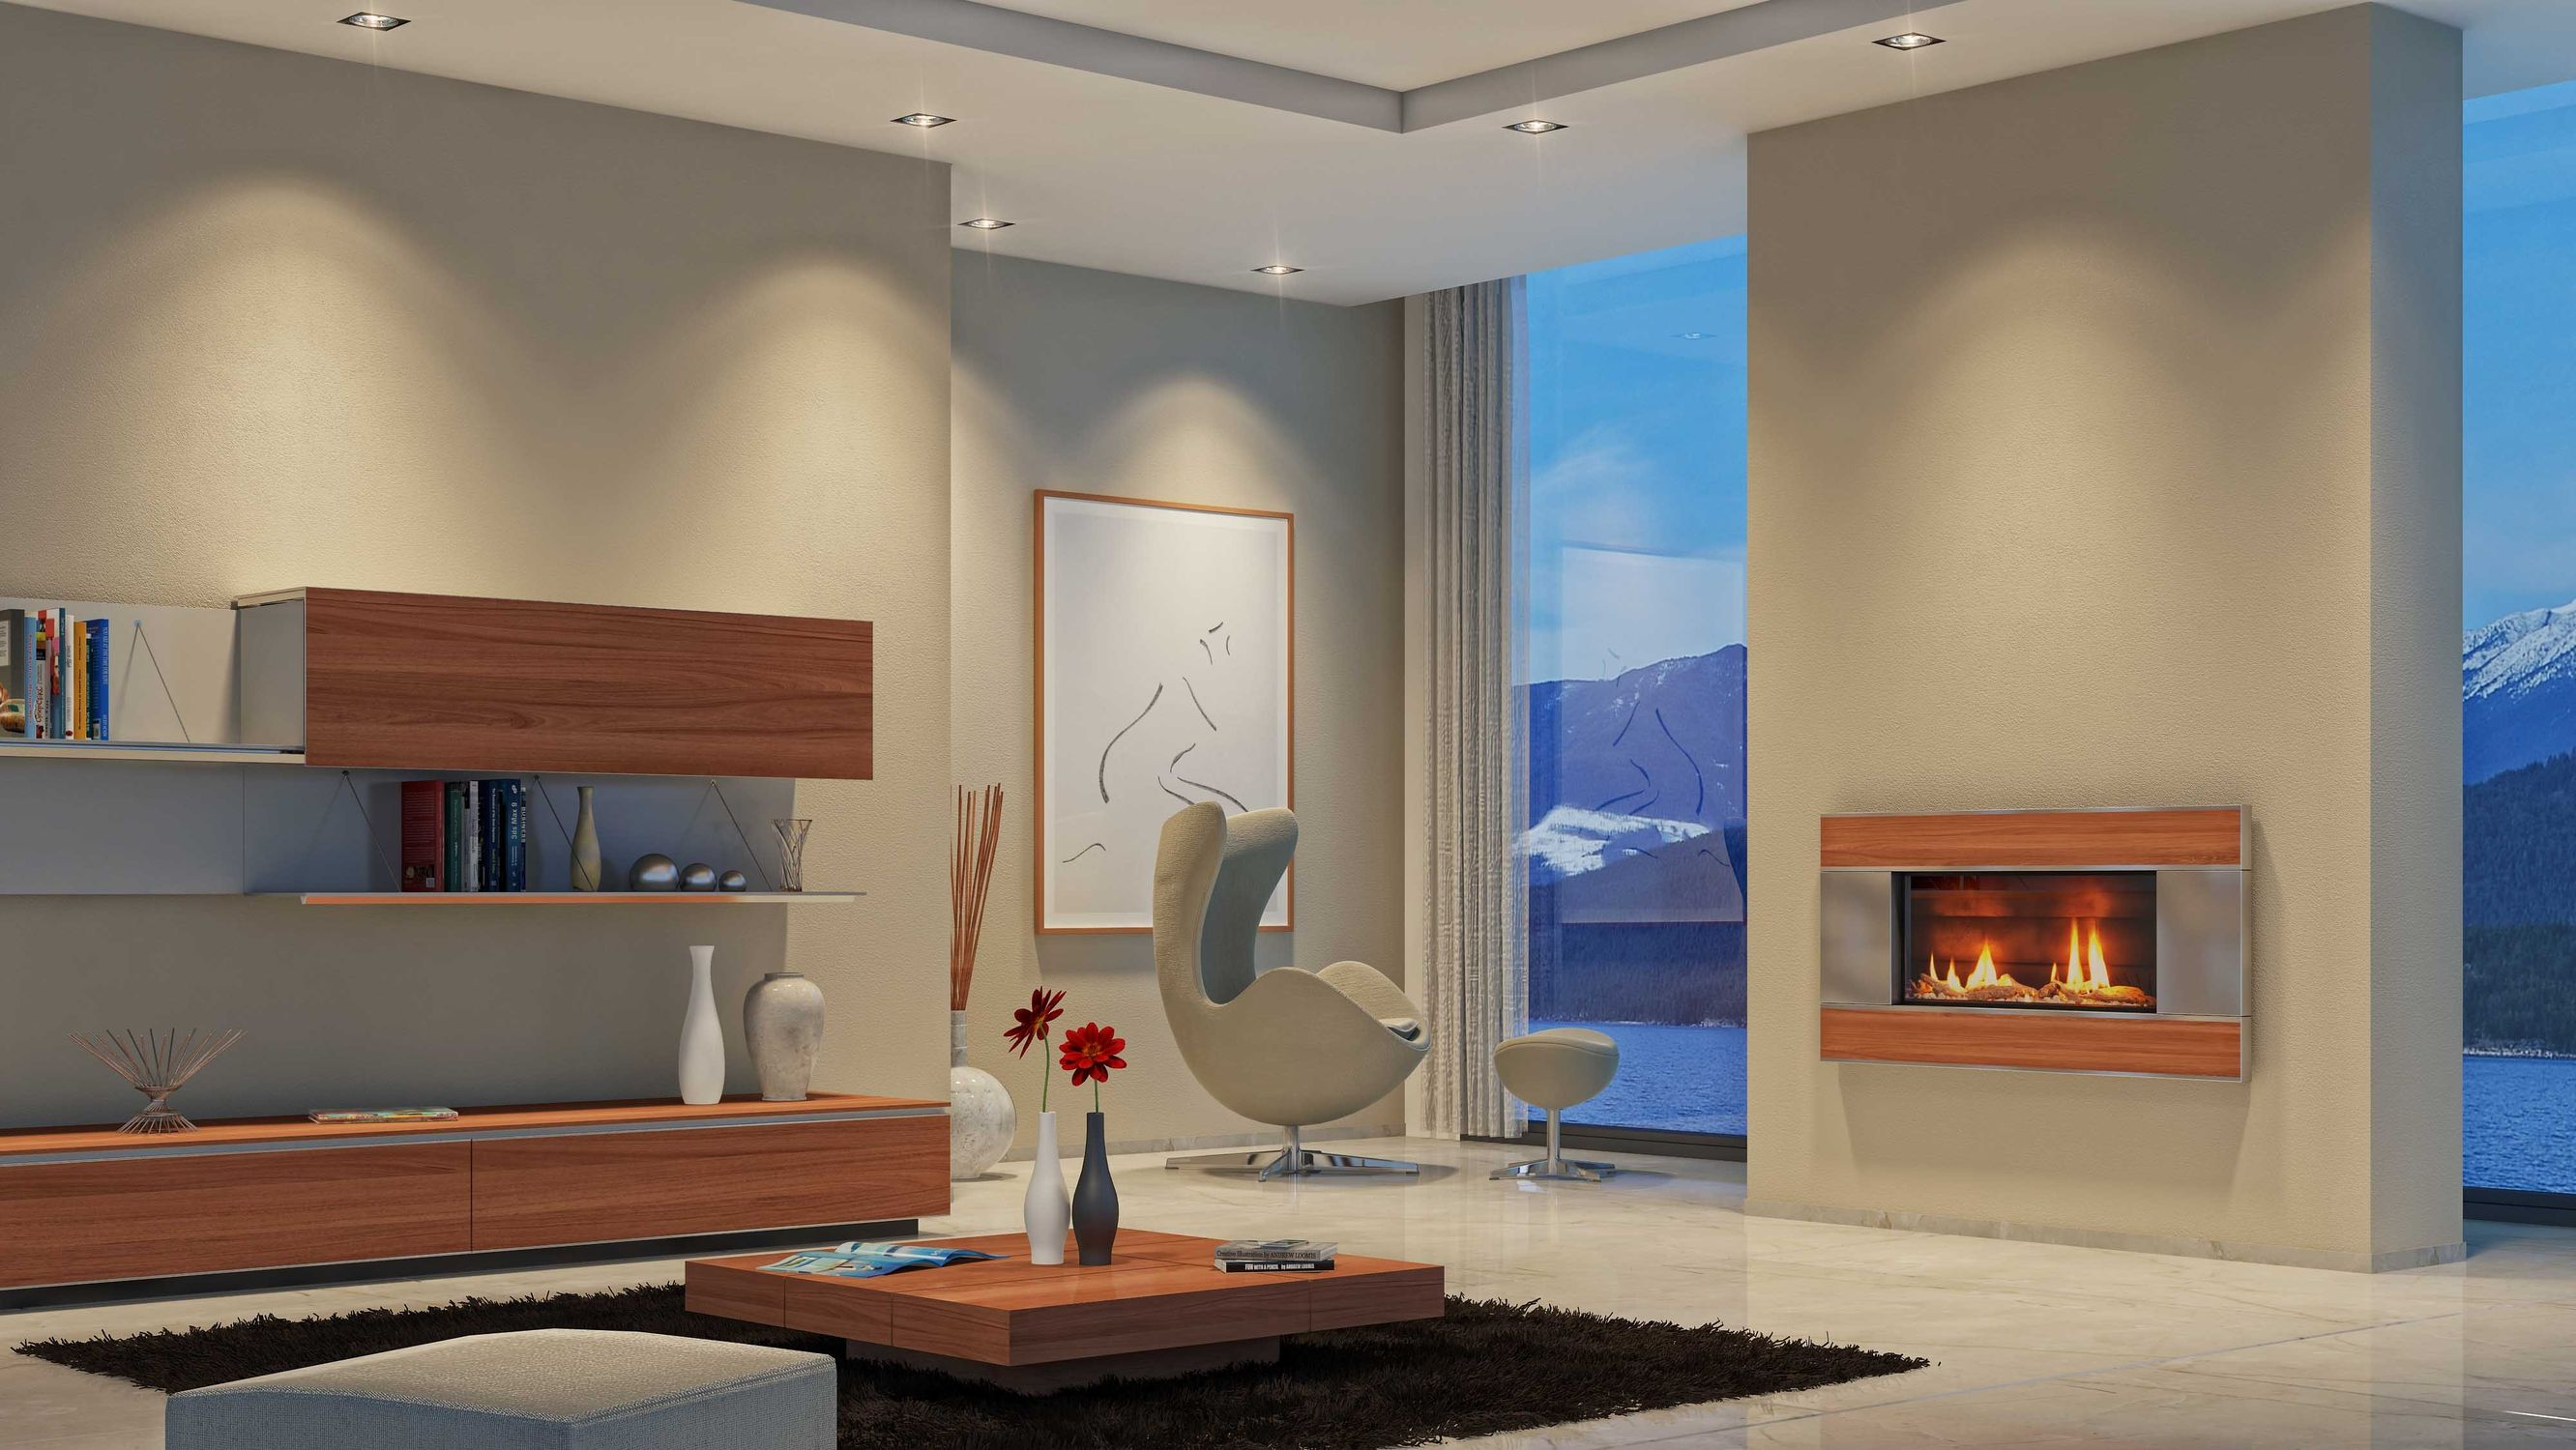 Discover all the information about the product Gas fireplace / contemporary / closed hearth / wall-mounted ST900 - Escea and find where you can buy it. Contact the manufacturer directly to receive a quote.